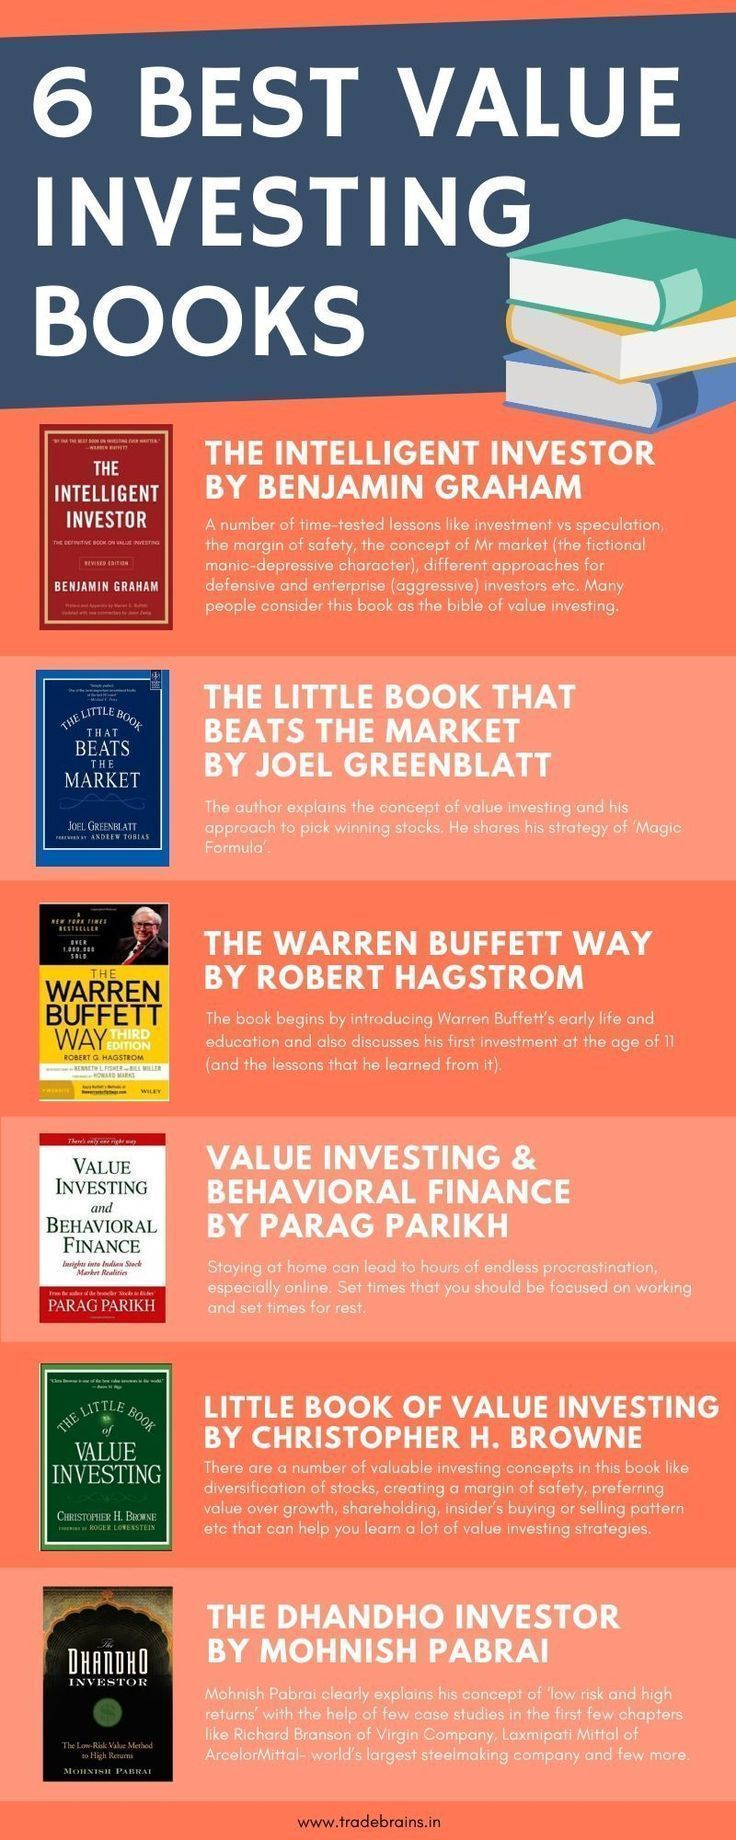 7 Best Value Investing Books That You Cannot Afford To Miss In 2020 Investing Books Value Investing Finance Books